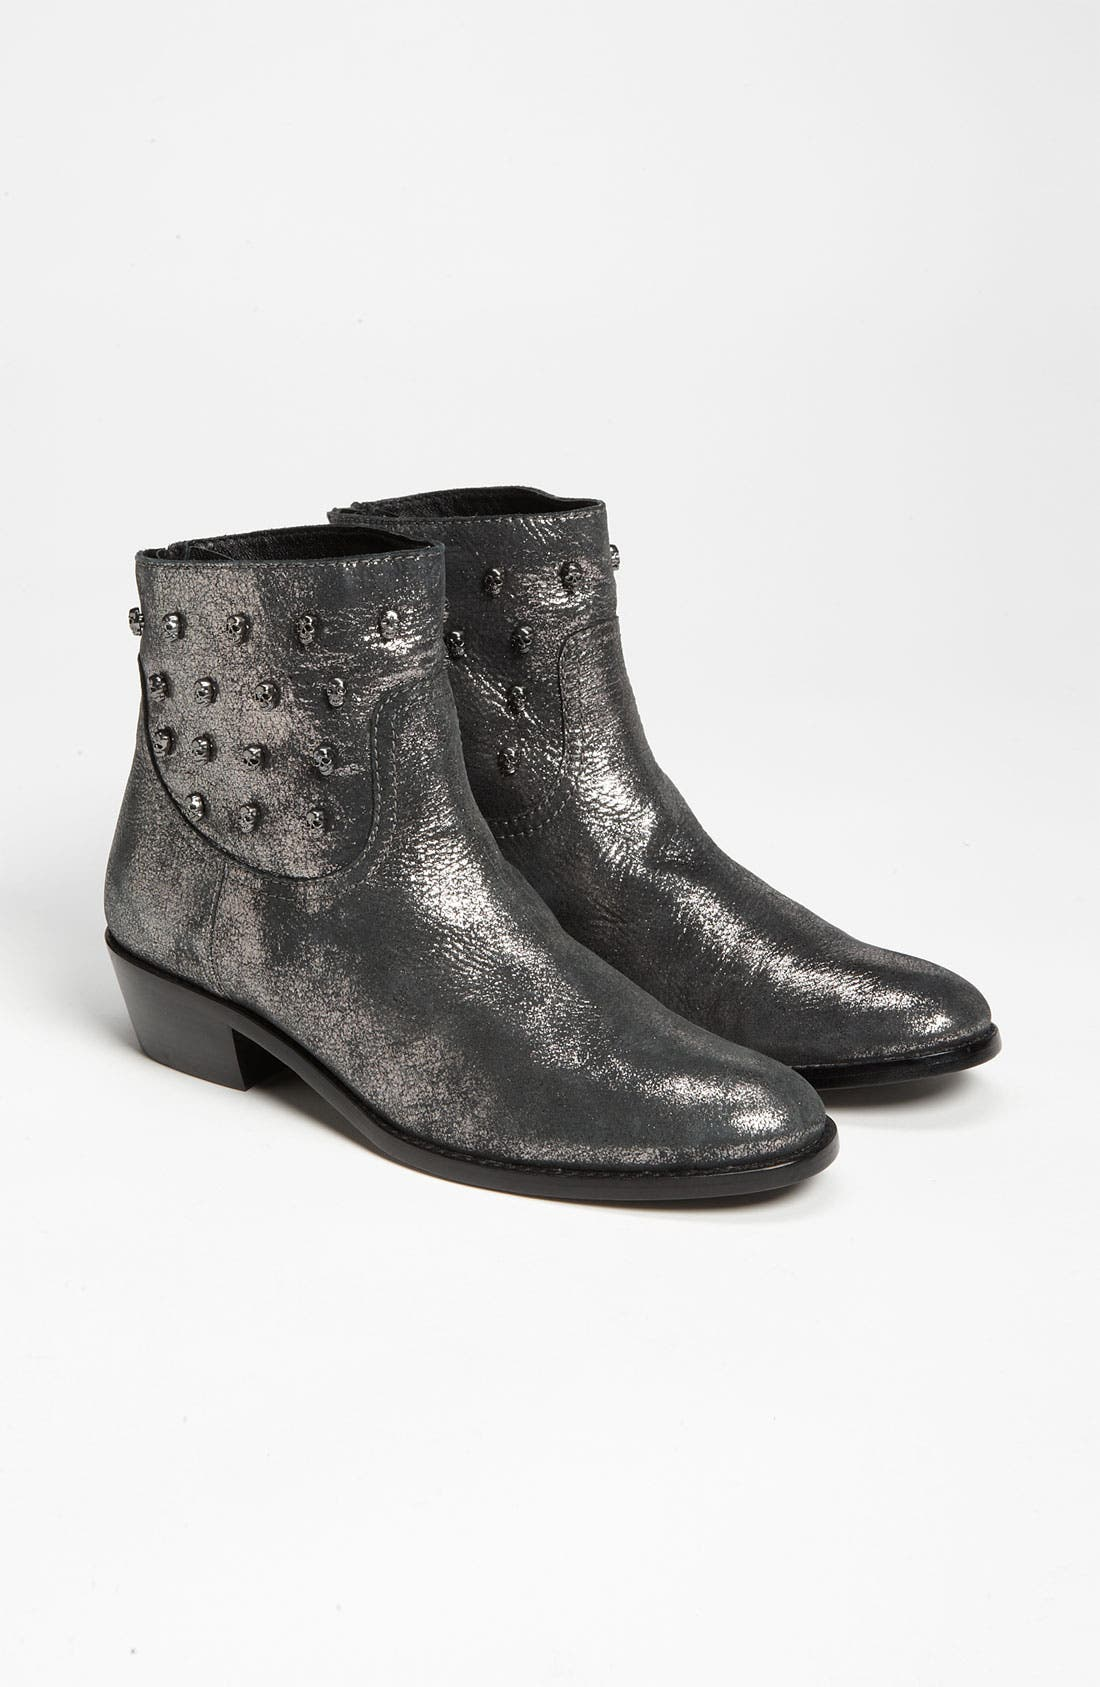 ZADIG & VOLTAIRE,                             'Teddy' Boot,                             Alternate thumbnail 3, color,                             001